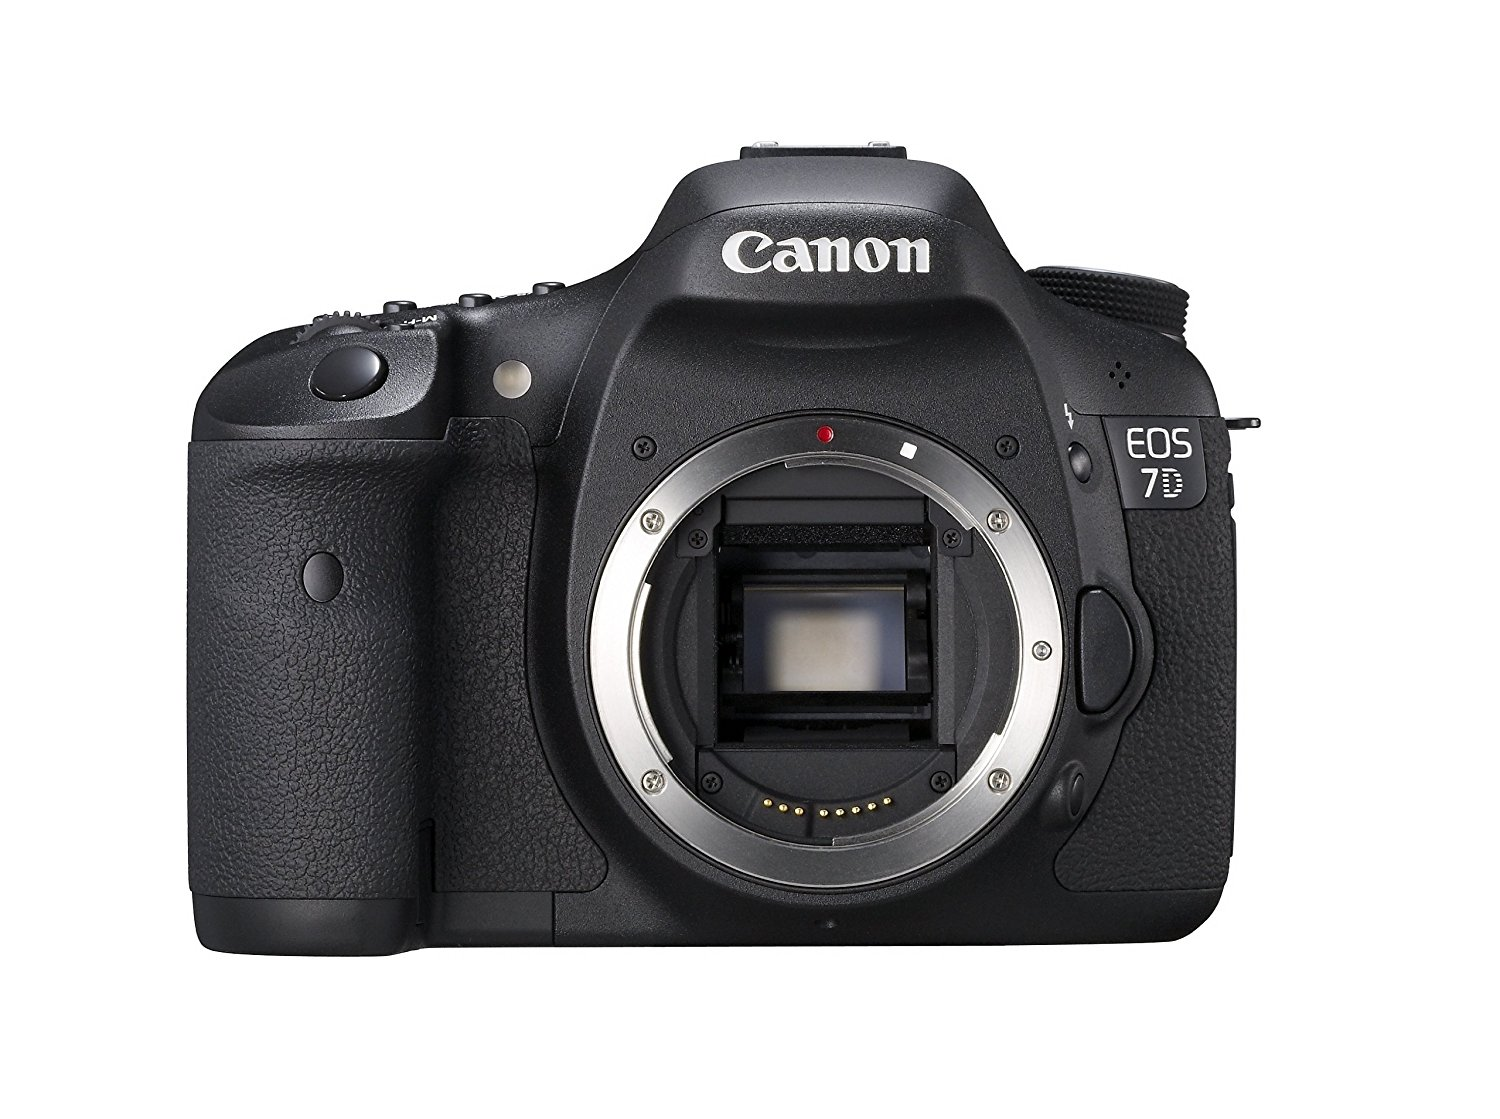 Canon EOS 7D - Cámara Réflex Digital 18 MP (Cuerpo) (Reacondicionado Certificado)